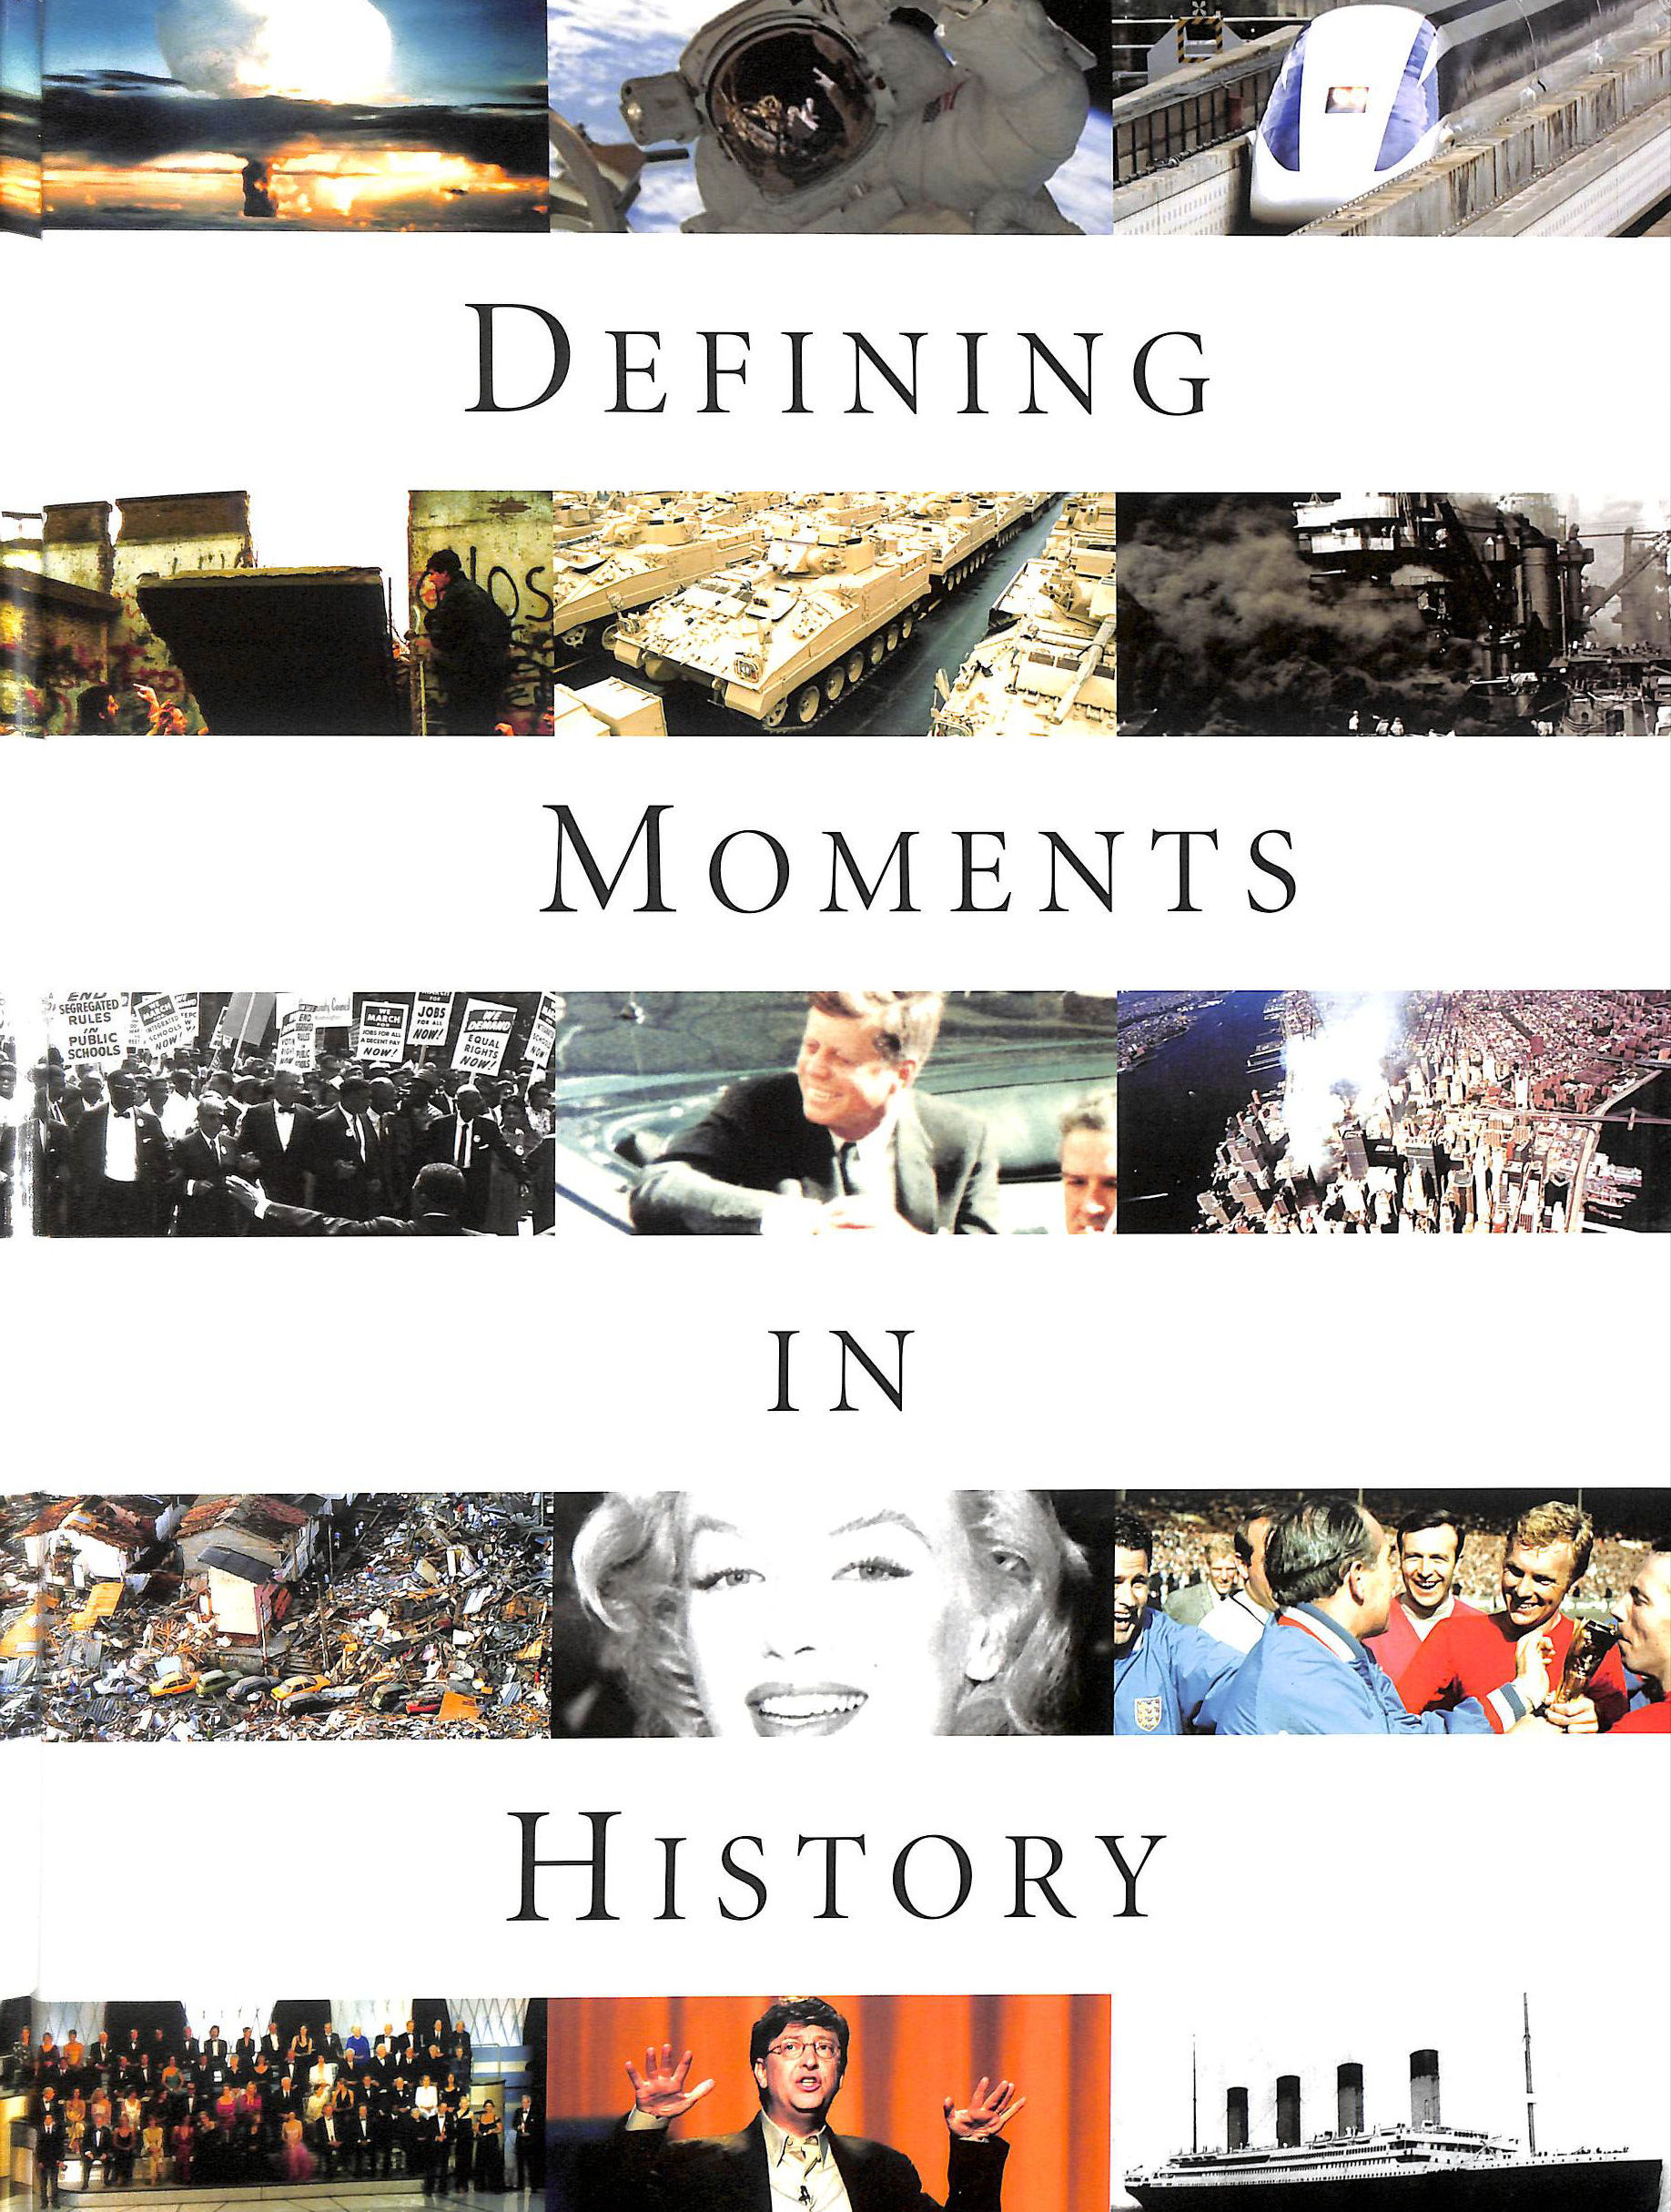 HOLMES, SARAH - Defining Moments in History